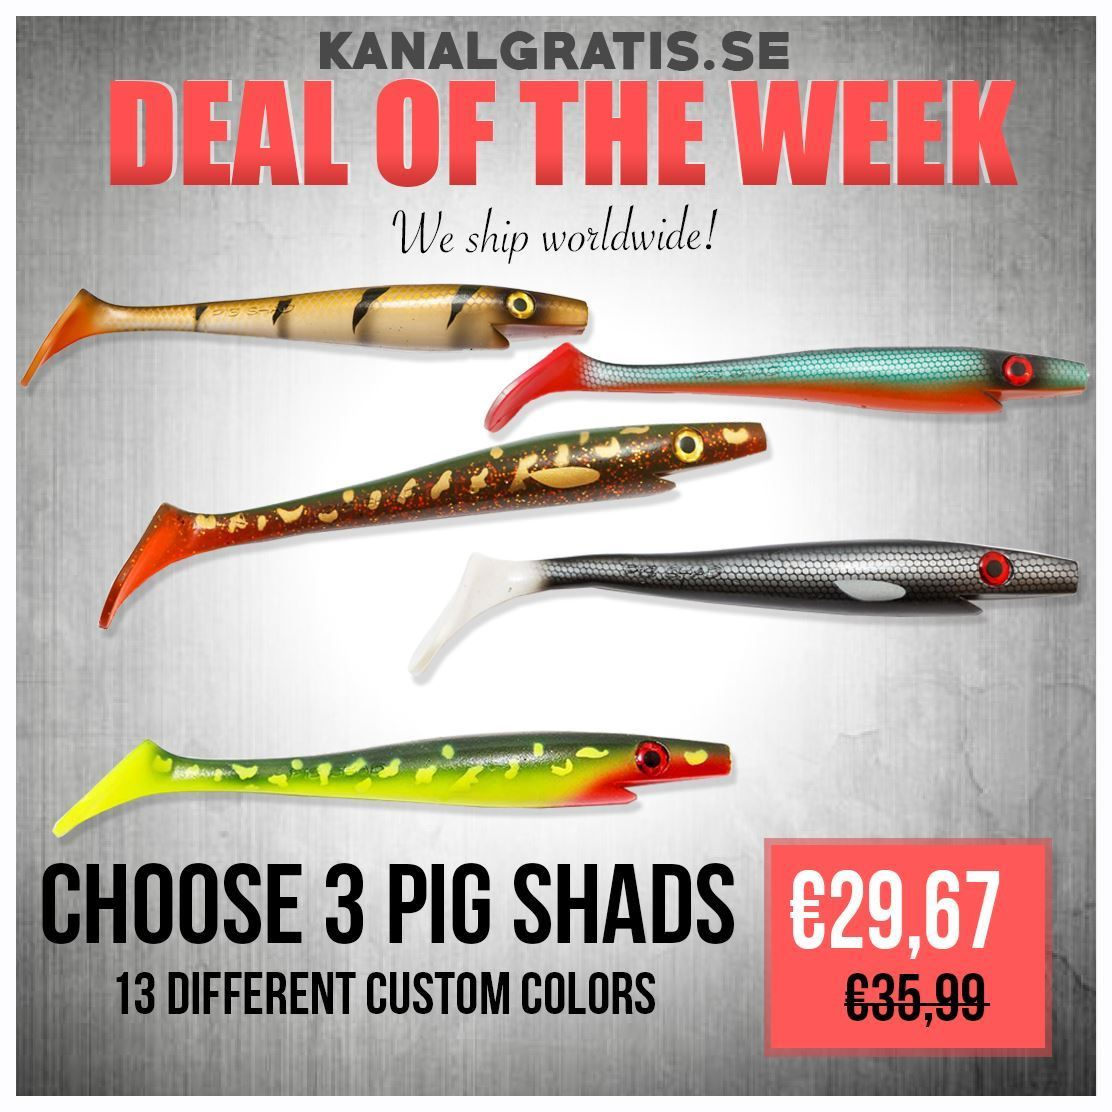 Picture of CUSTOM COLORS PIG SHAD - Choose your favorite 3